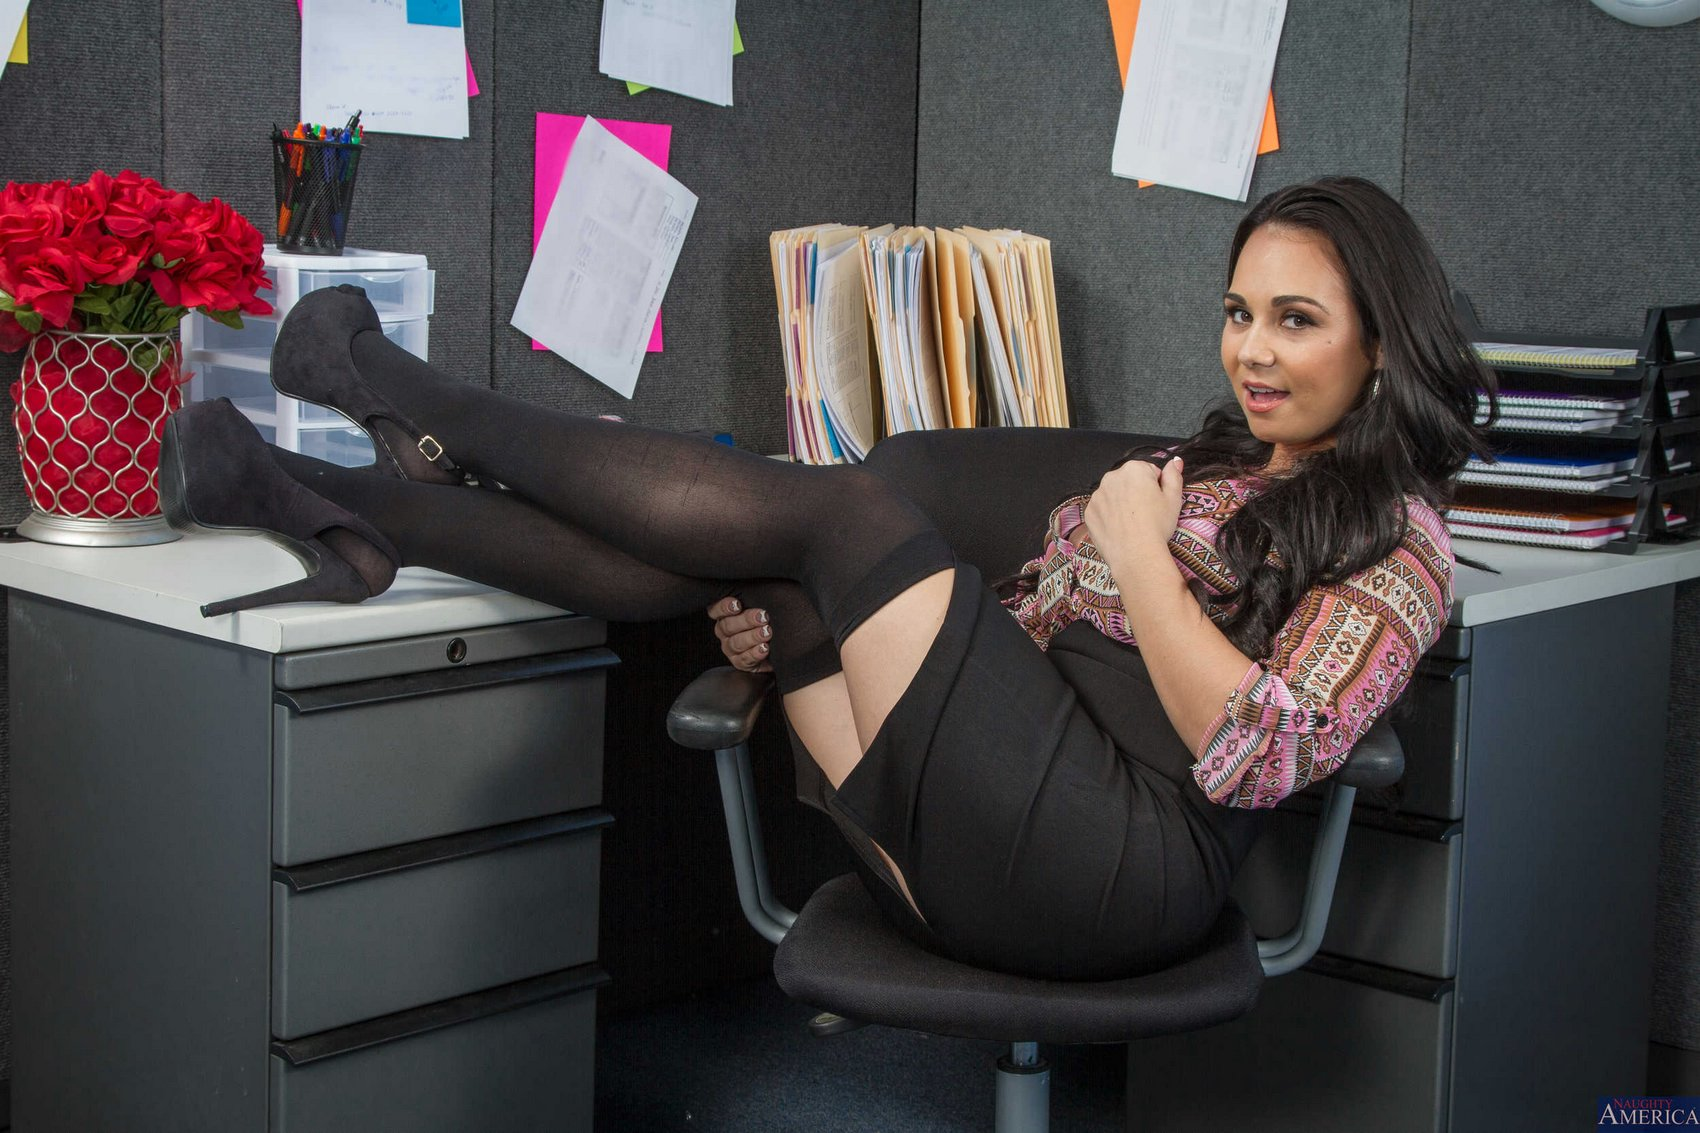 holly west in black stockings and heels posing in the